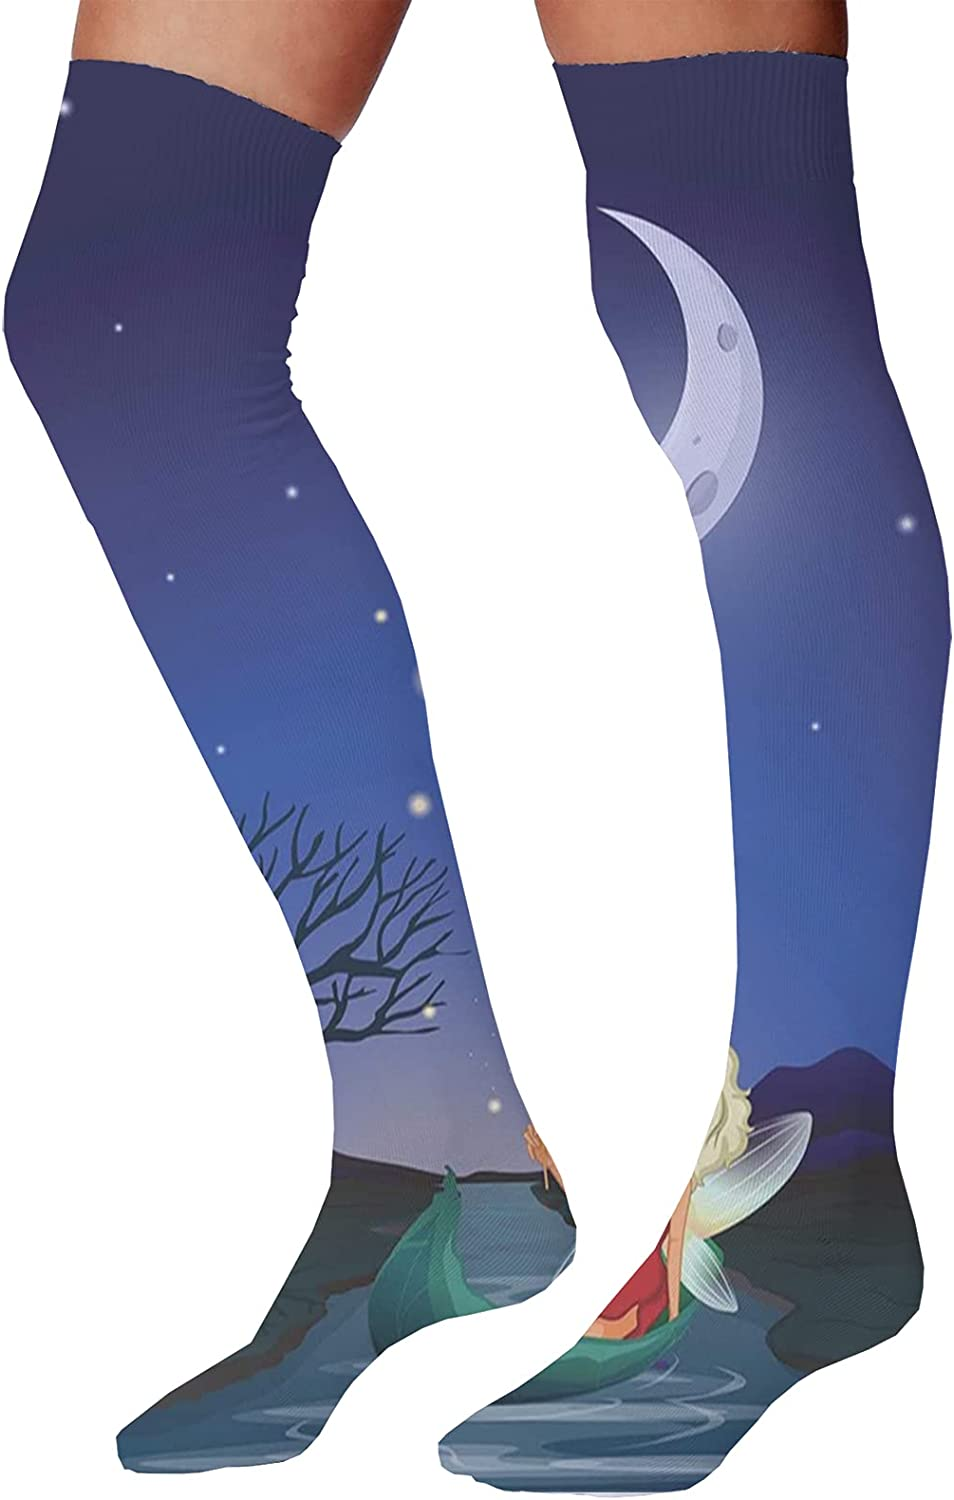 Women's Colorful Patterned UnisexElf Pixie Sitting on The Boat Under Full Moon Sky Night Magic Fairy Girlish Graphic